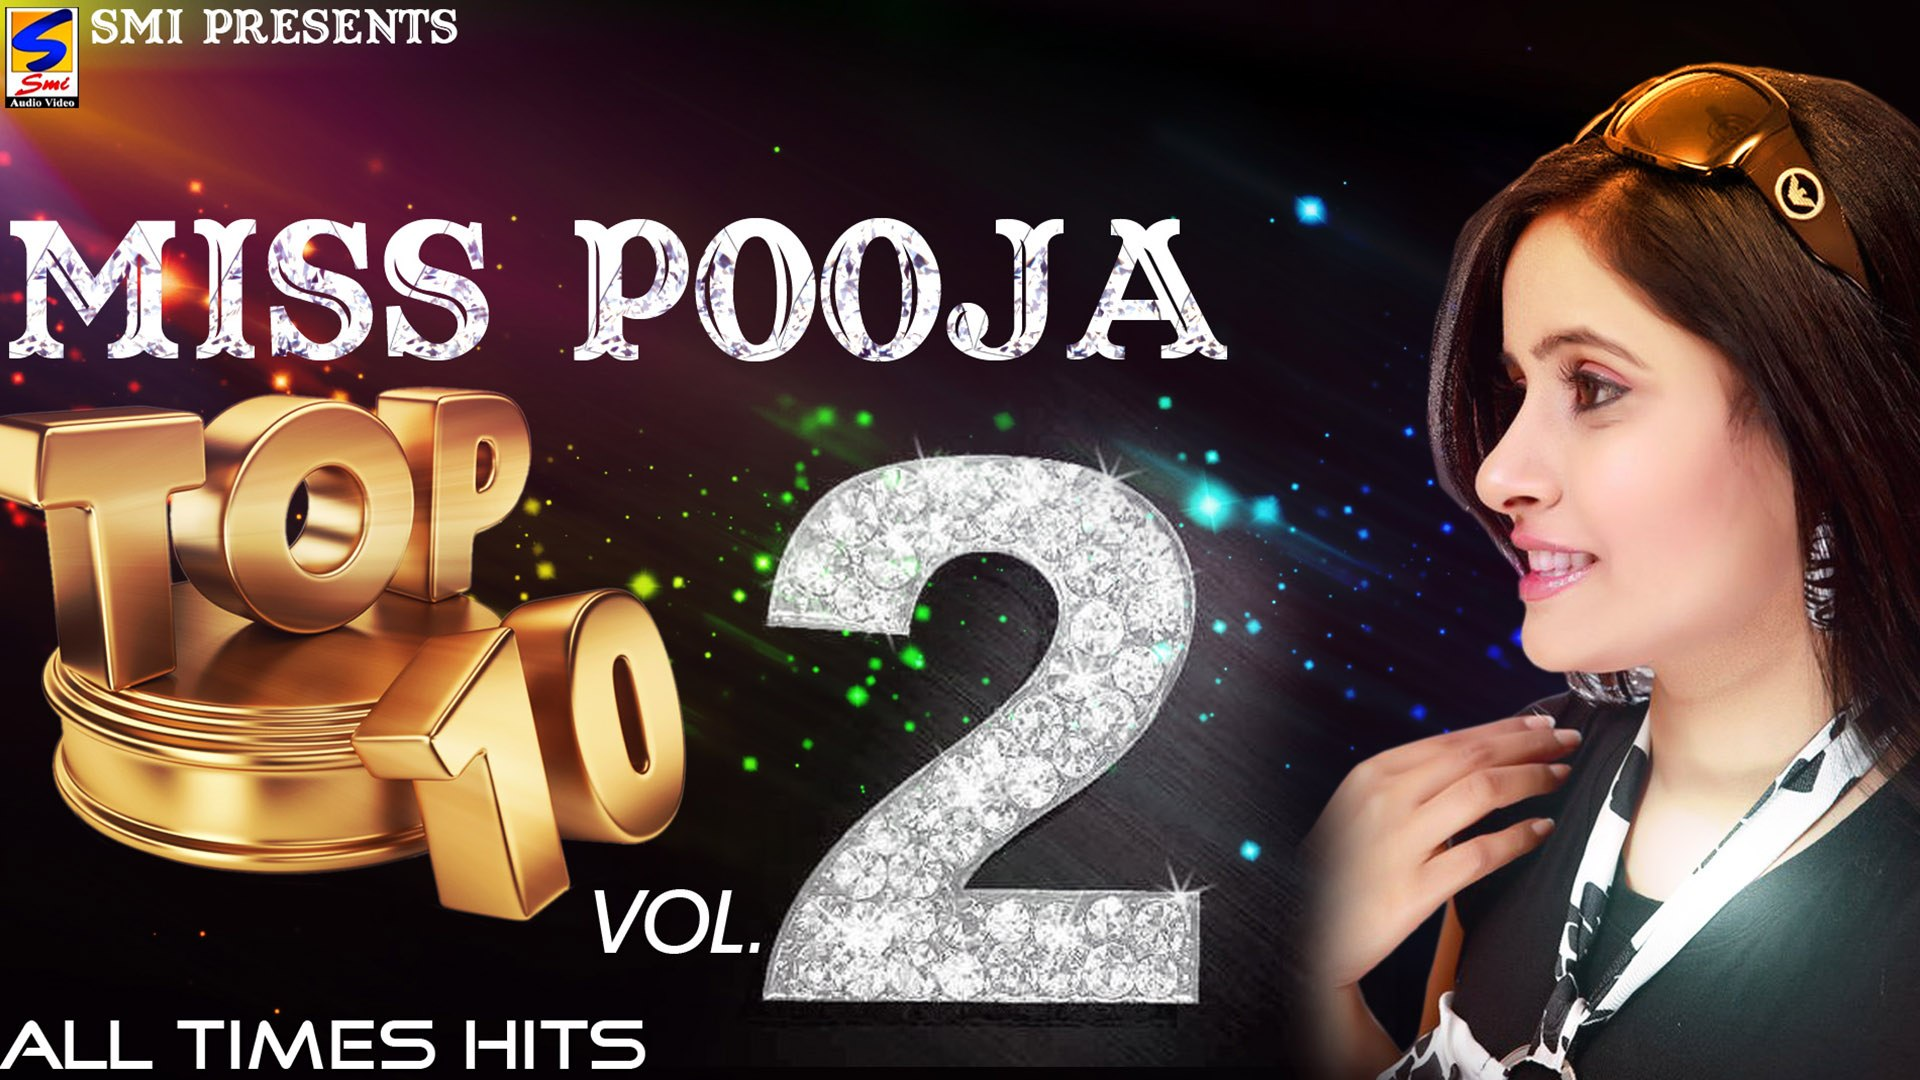 Miss Pooja Top 10 All Times Hits Vol 2 | Non-Stop HD Video || Latest Punjabi all times New hit Song